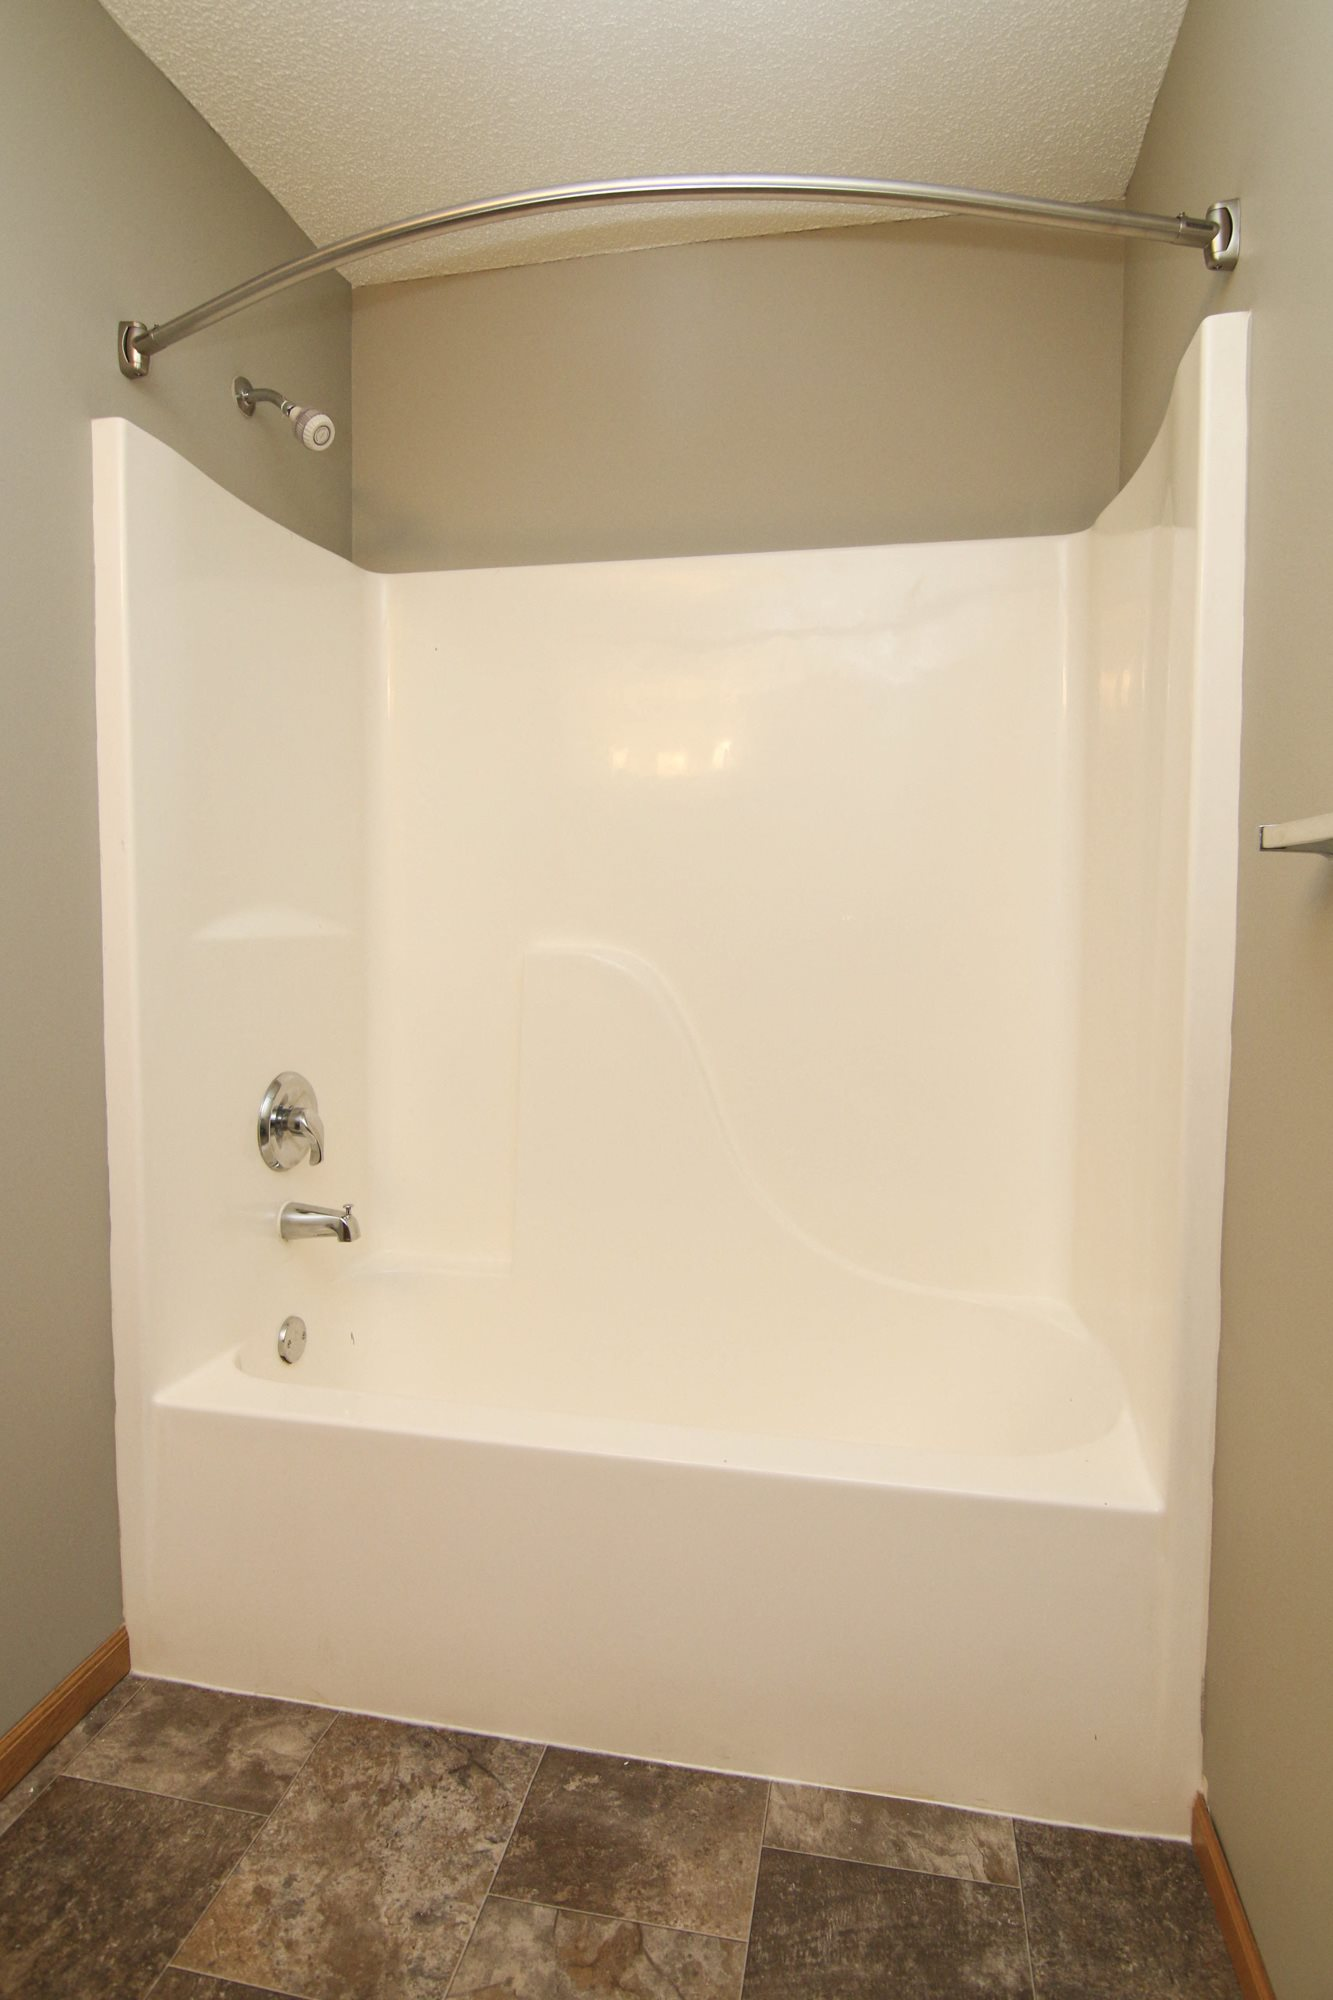 Brand new shower and bathtub in renovated bathroom at Northbrook Apartments